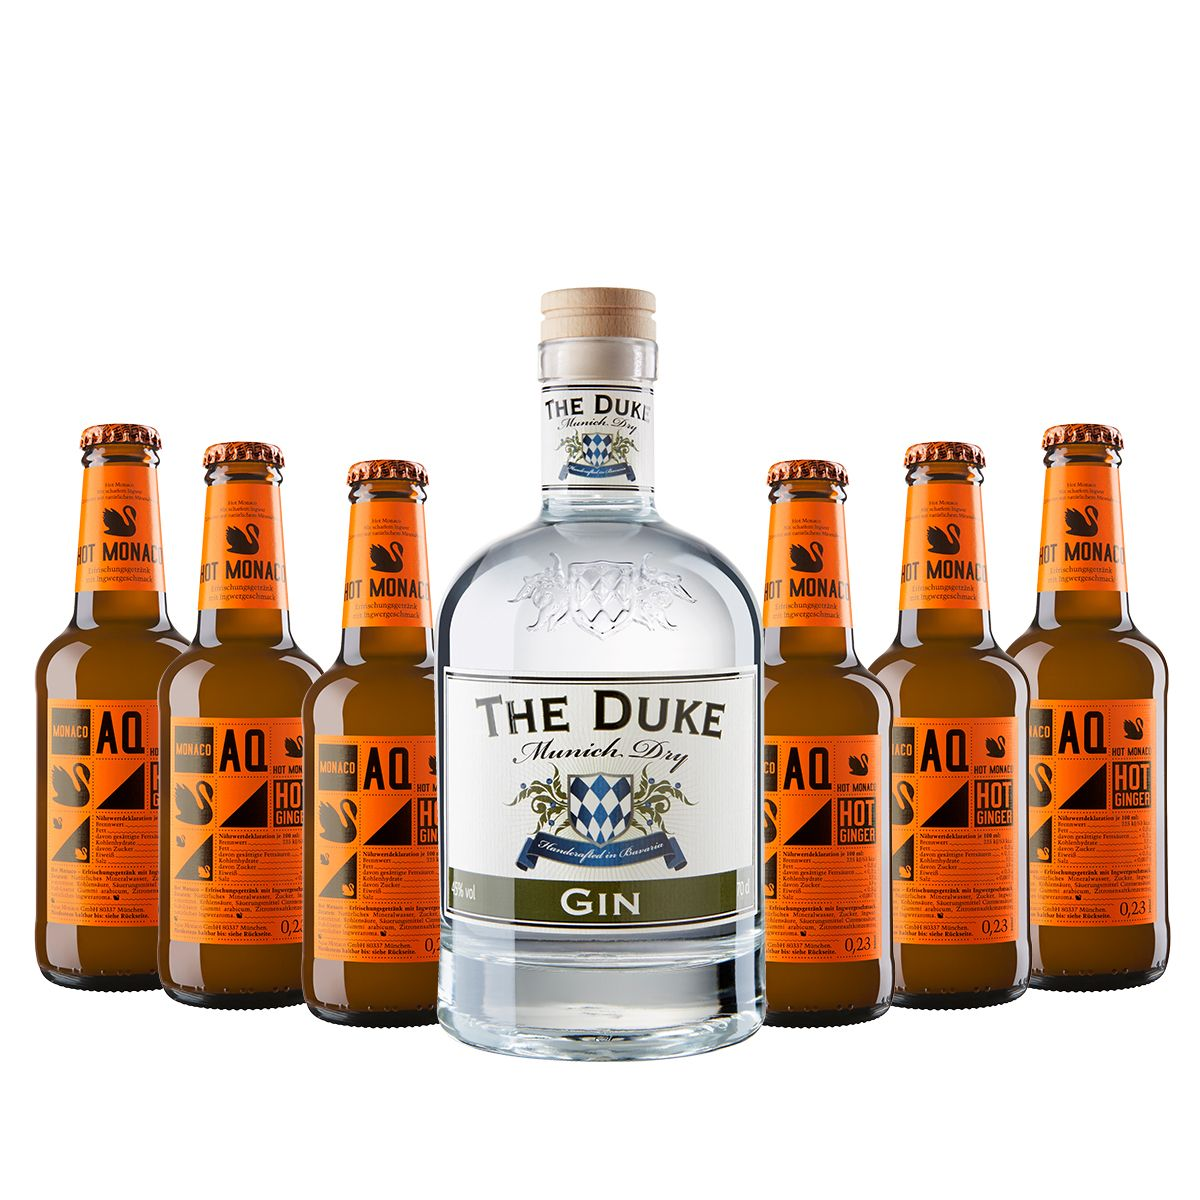 THE DUKE Munich Dry Gin und Hot Ginger Beer von Aqua Monaco